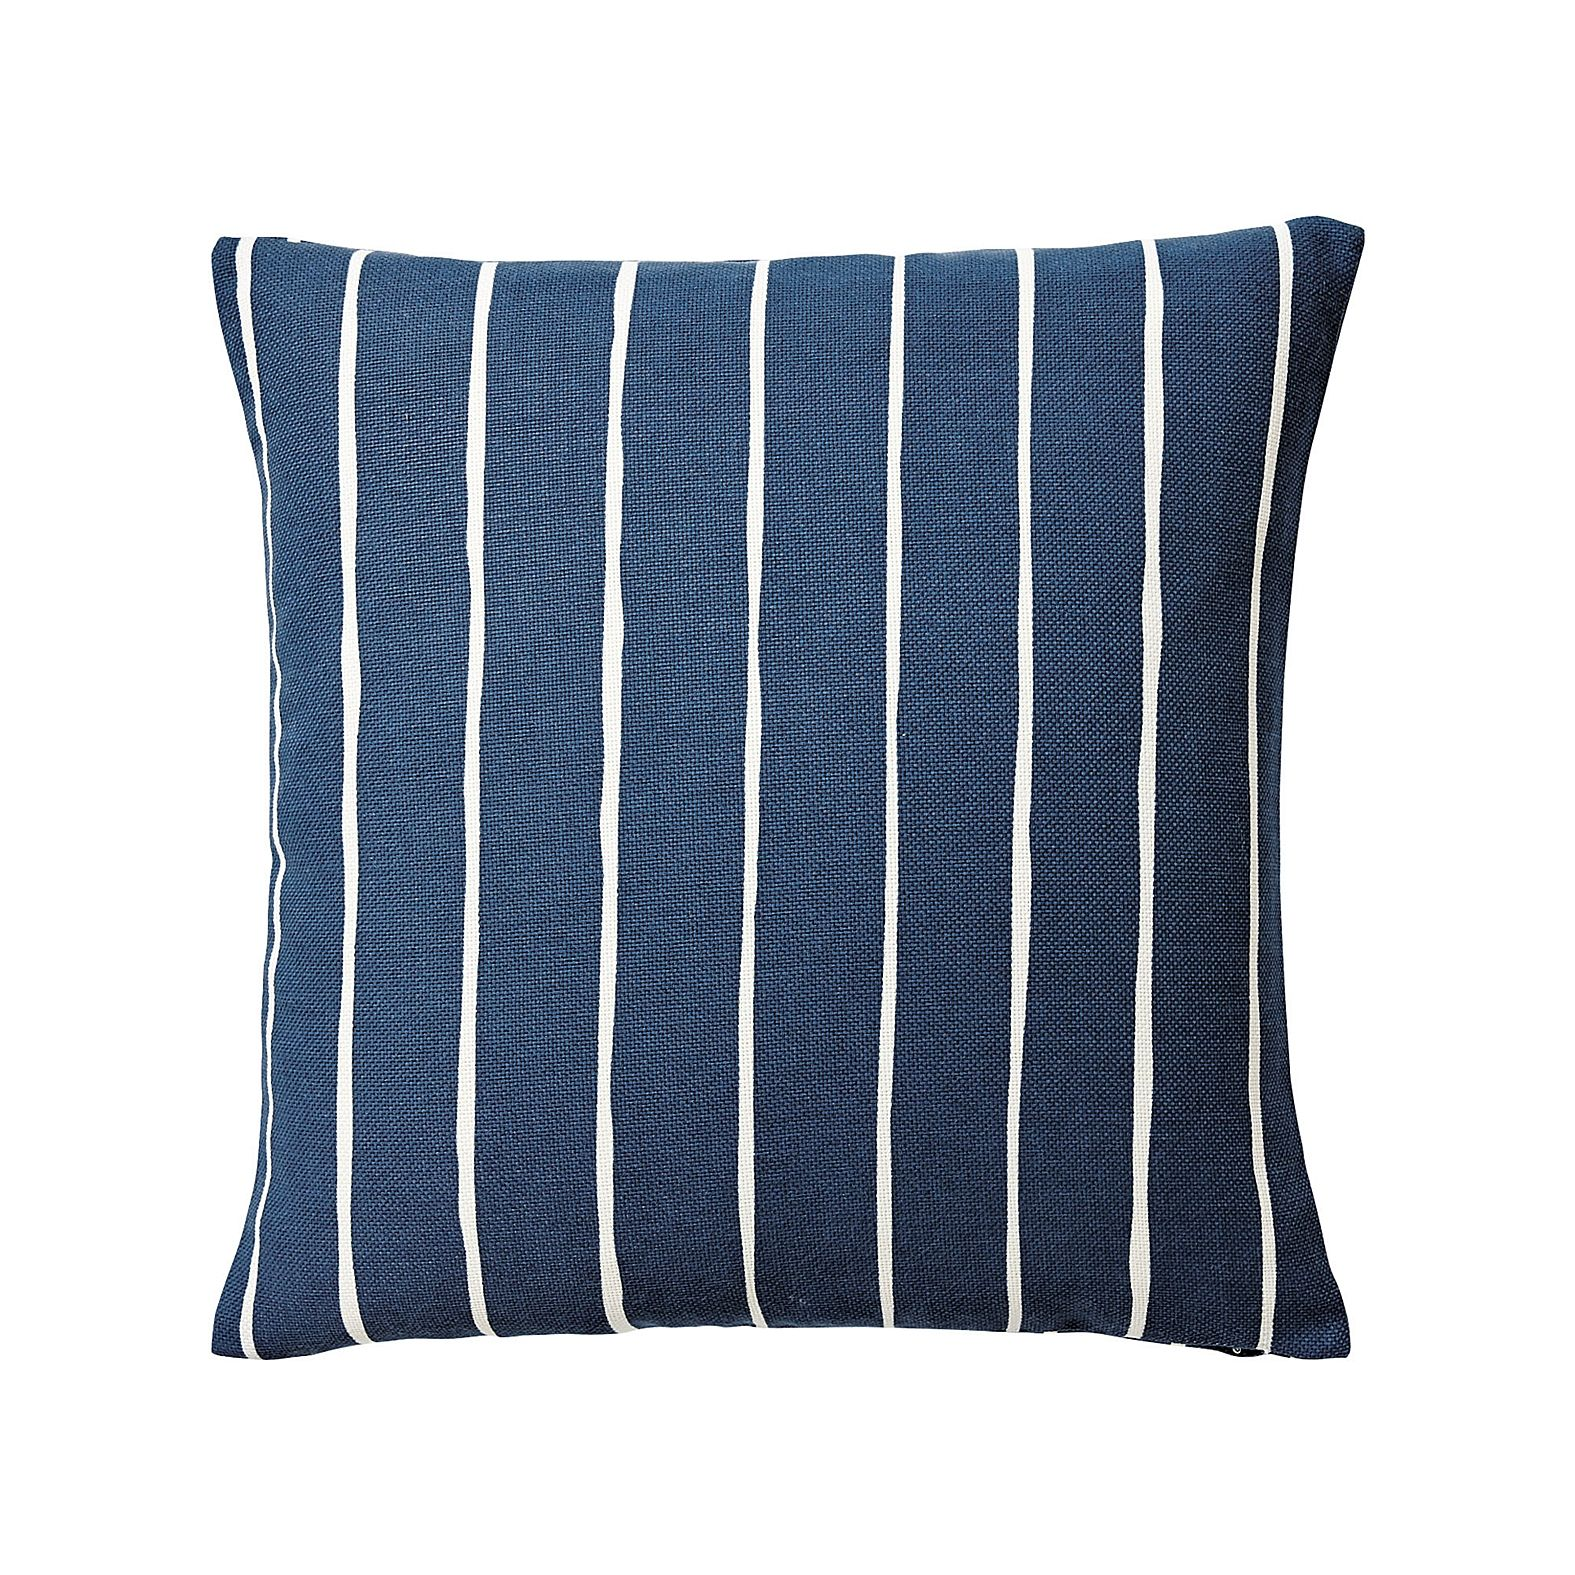 Serena And Lily Outdoor Pillows.Jamesport Stripe Outdoor Pillow Cover Serena Lily